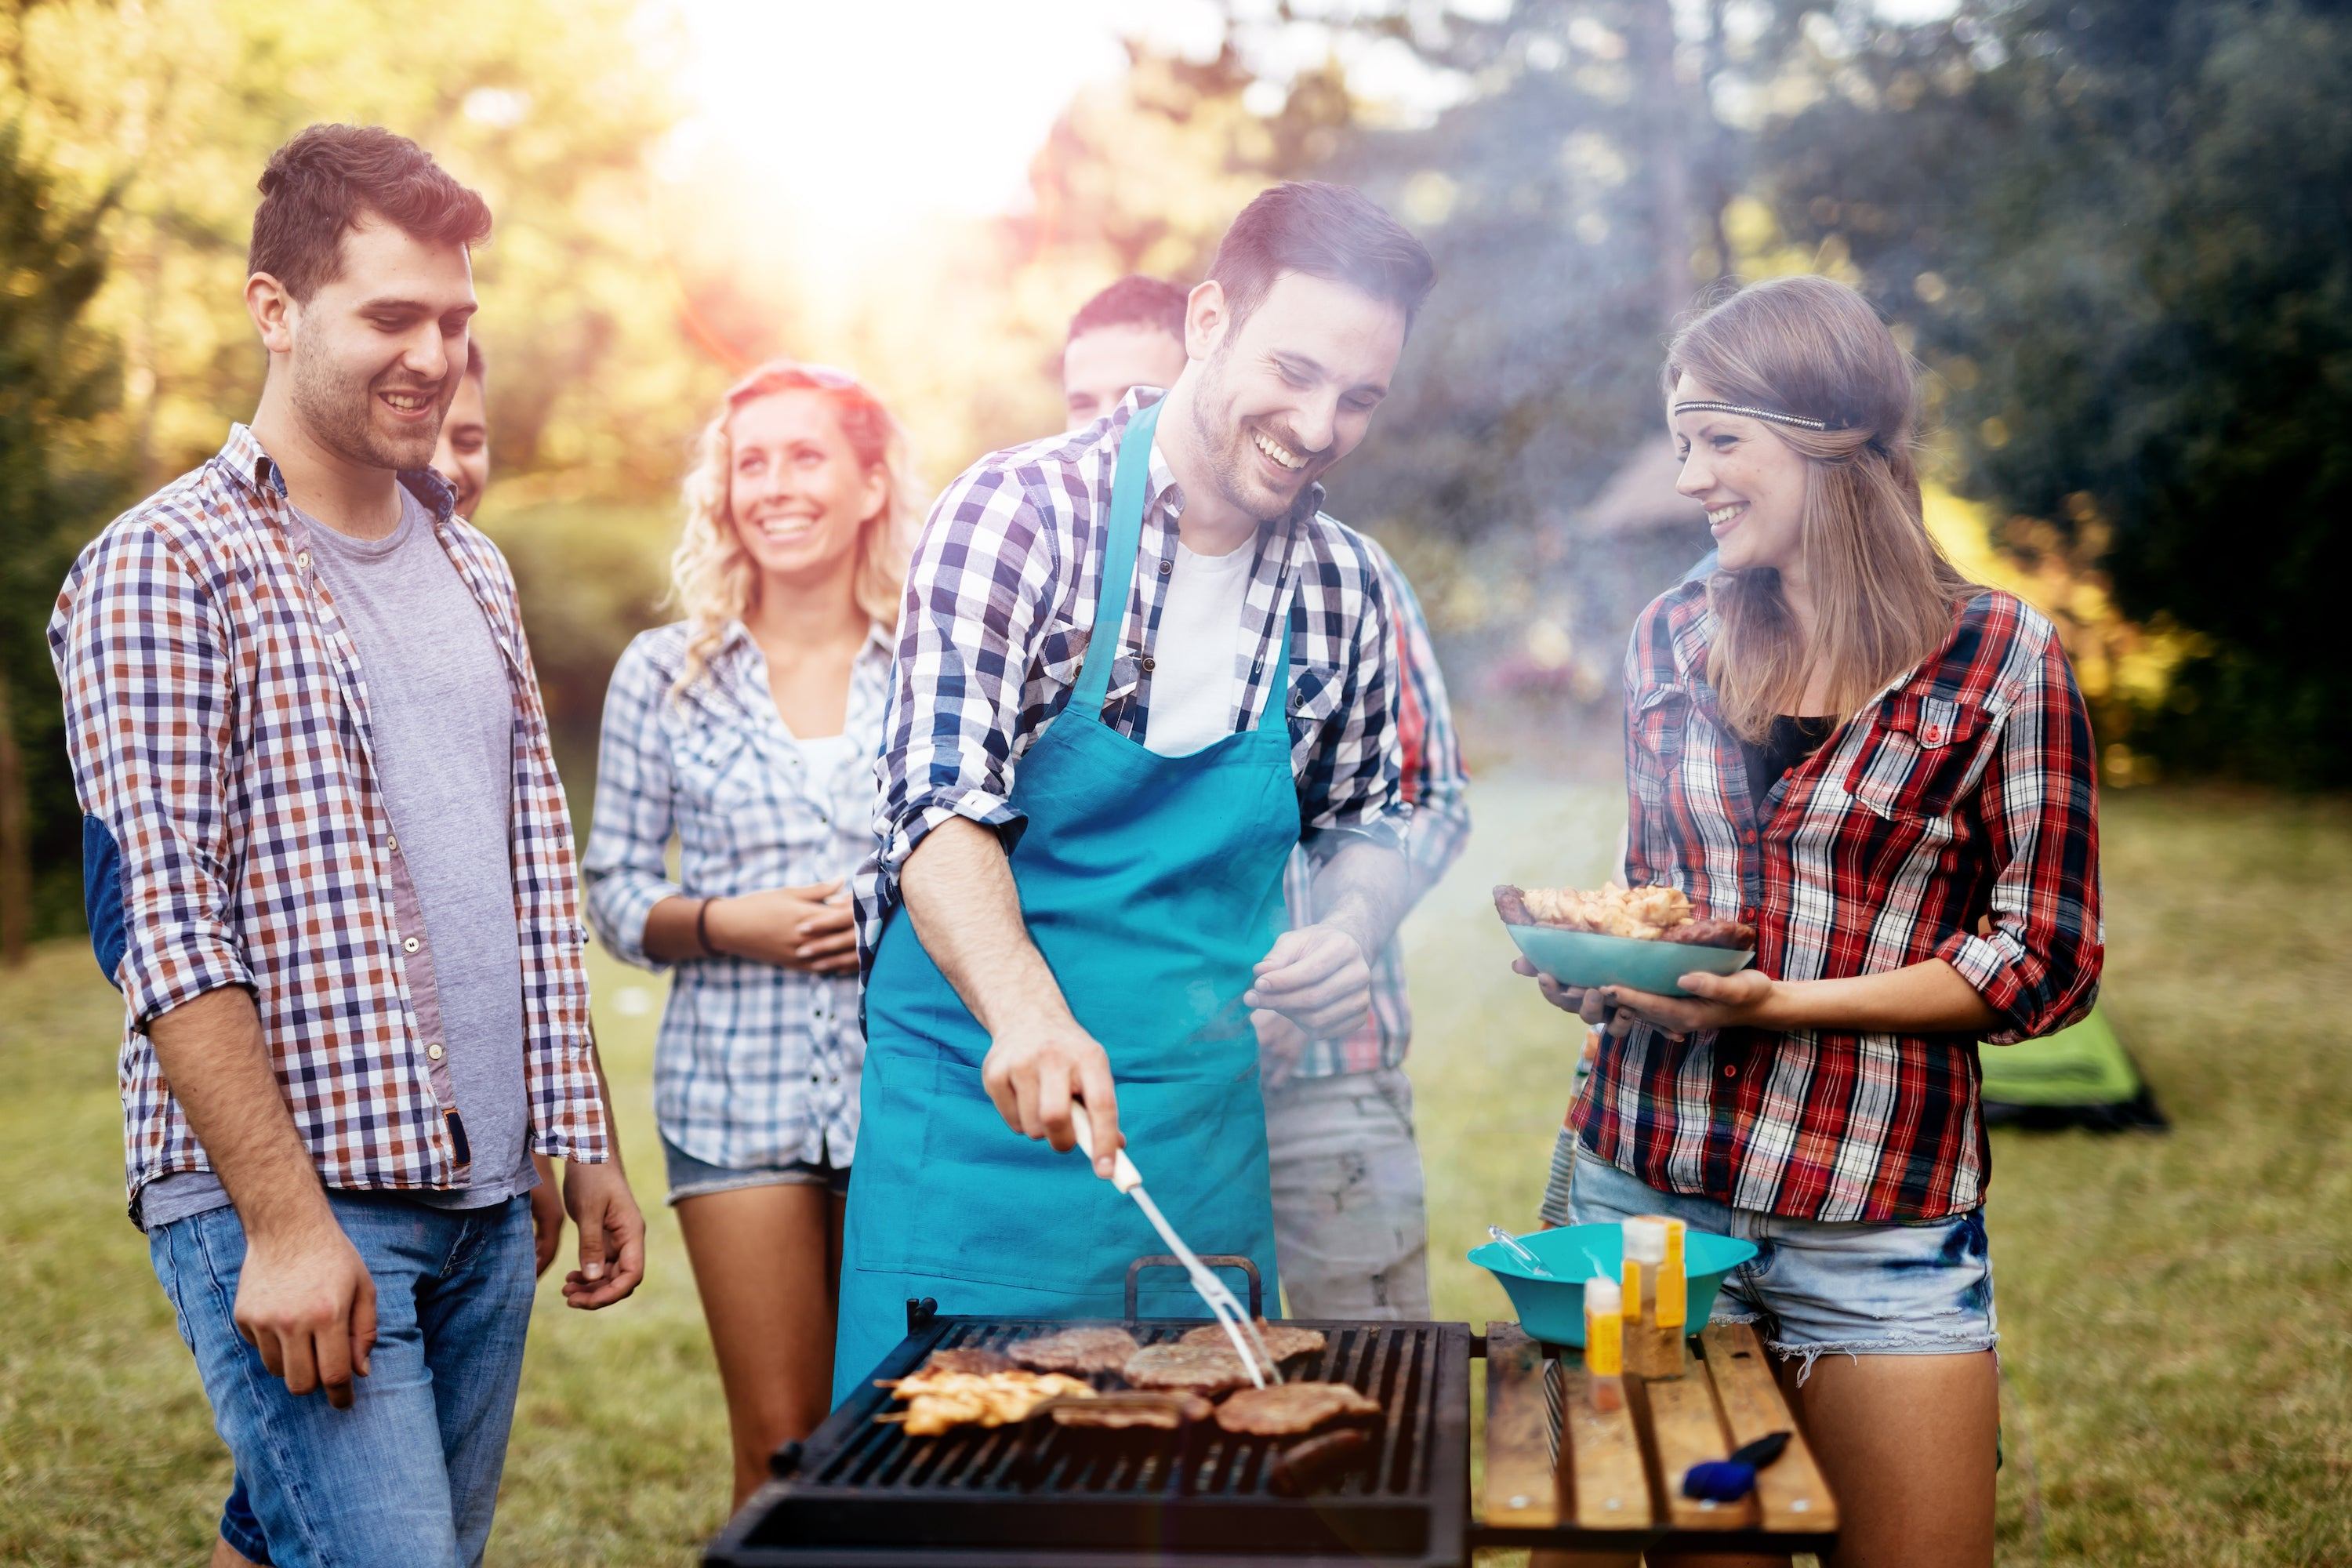 man grilling with friends waiting for food